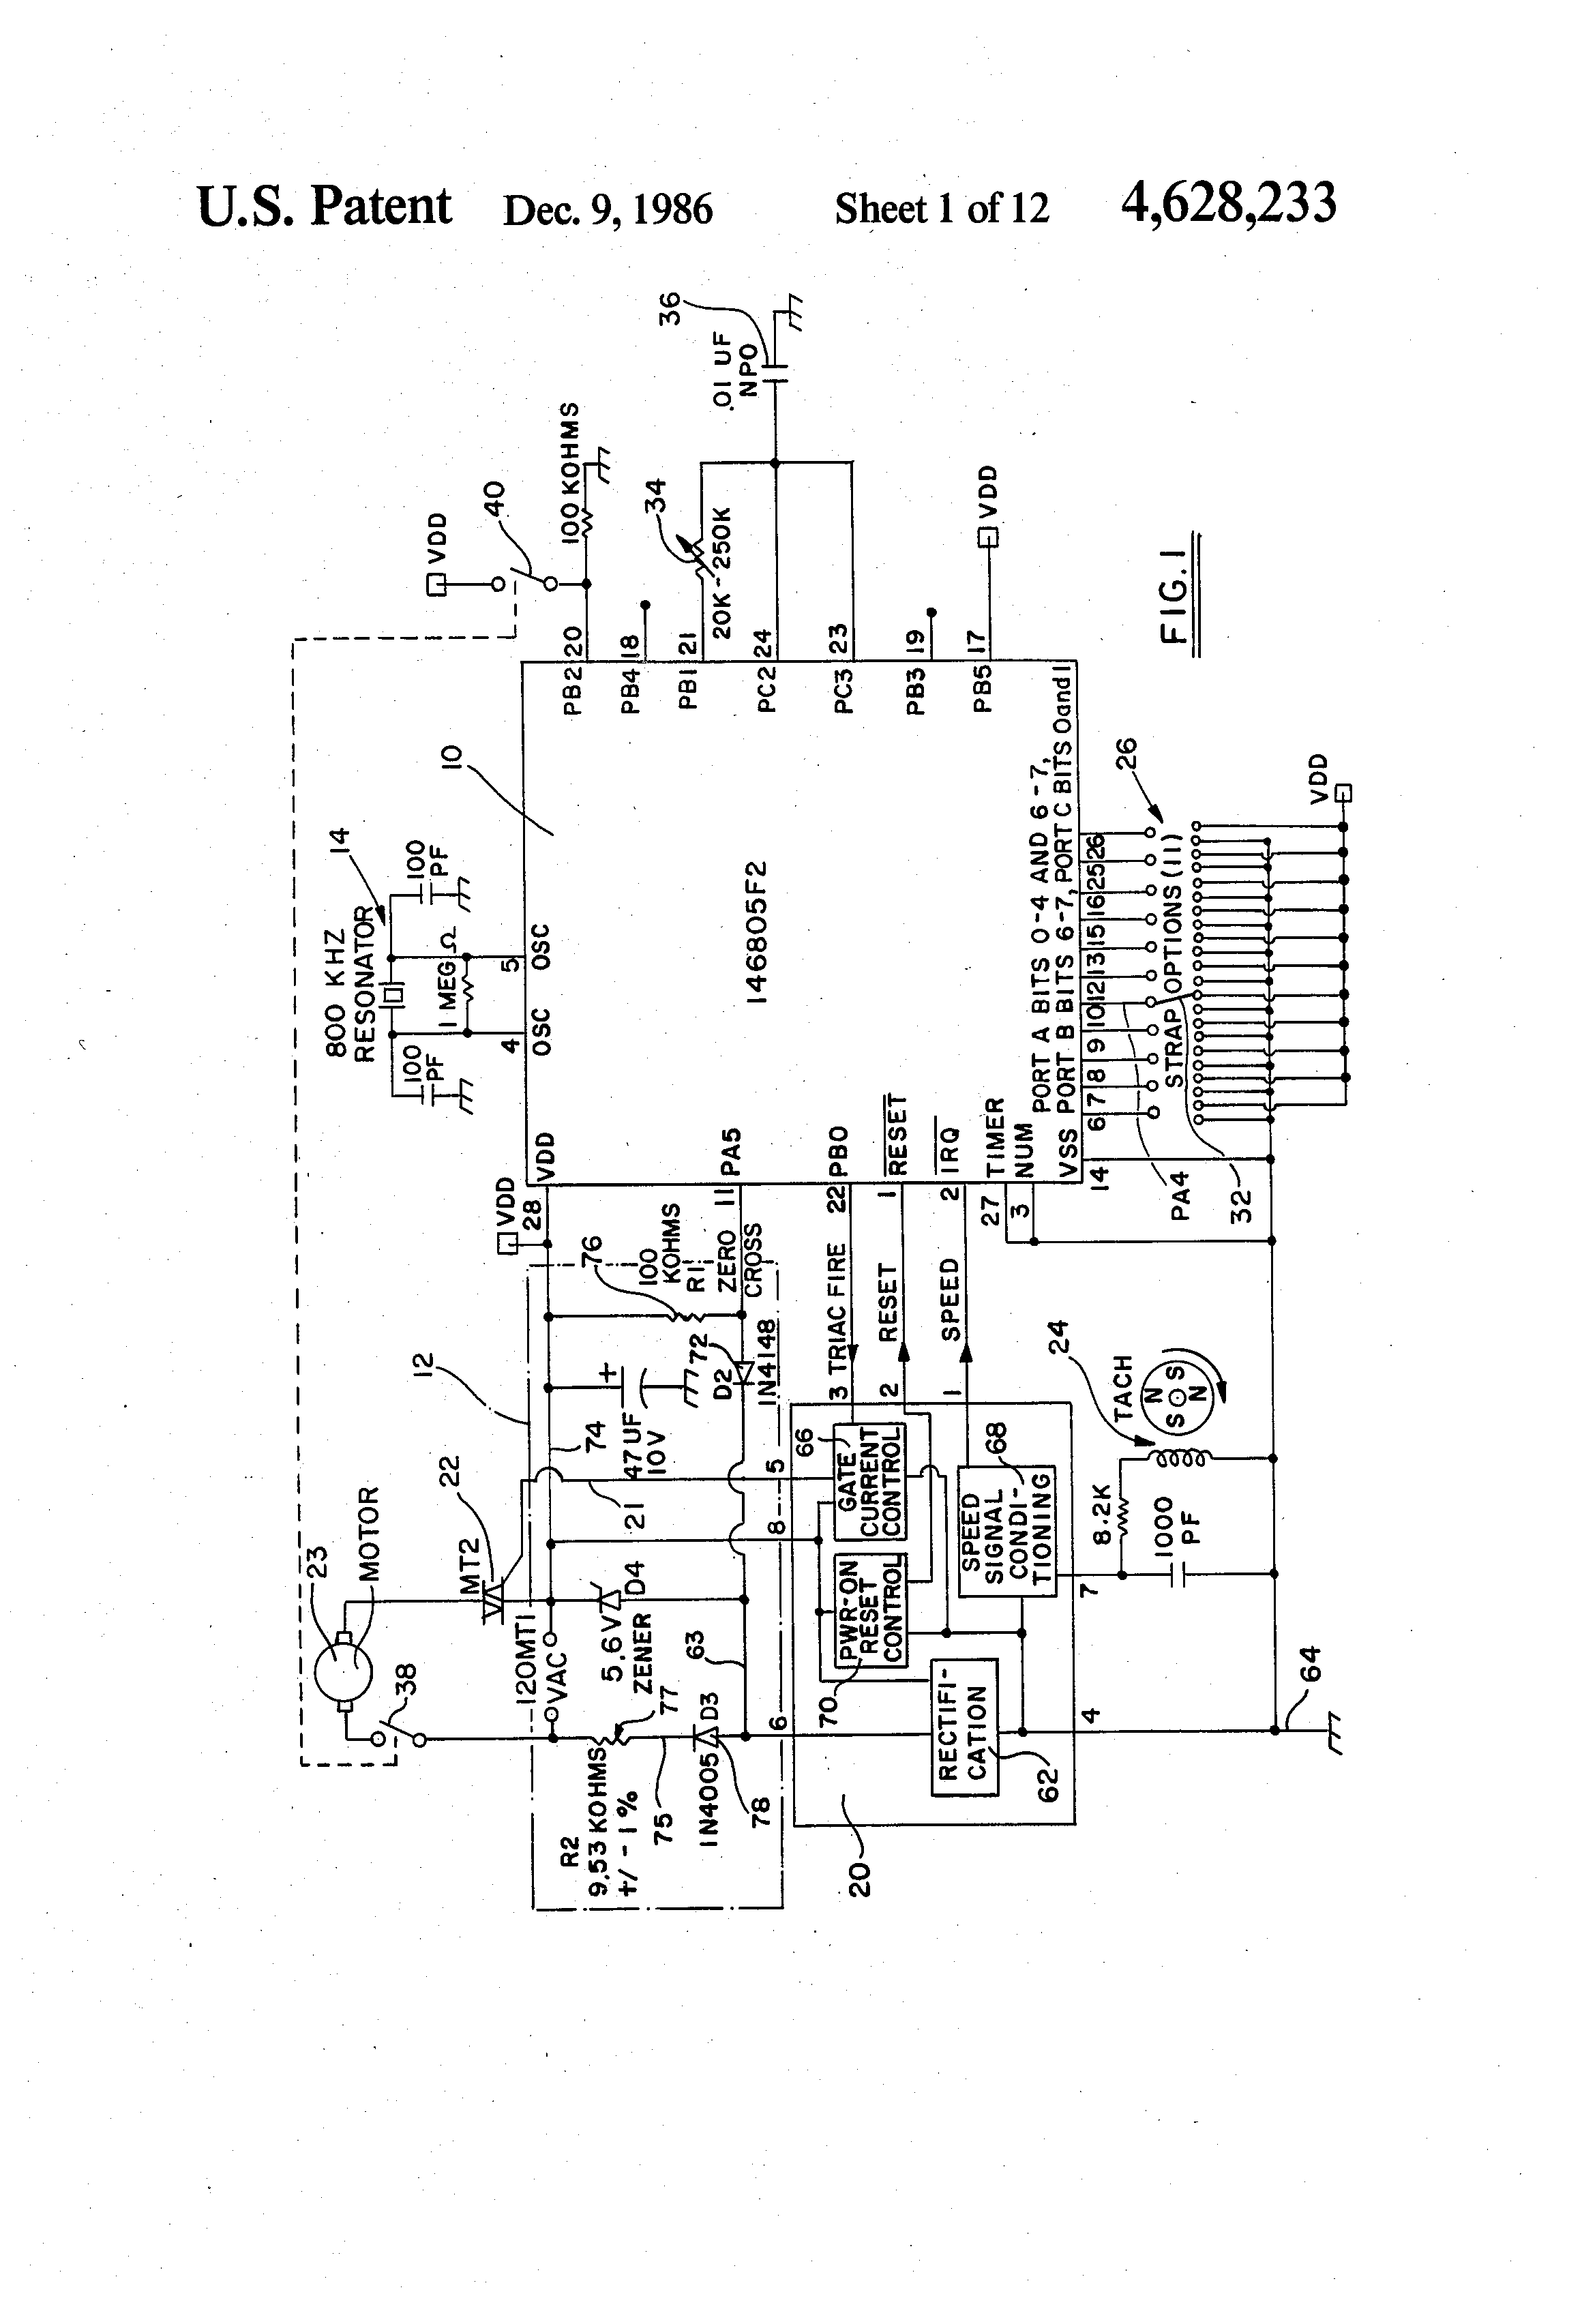 US4628233 1 liebert crac unit wiring diagrams liebert wiring diagrams collection liebert dry cooler wiring diagram at virtualis.co